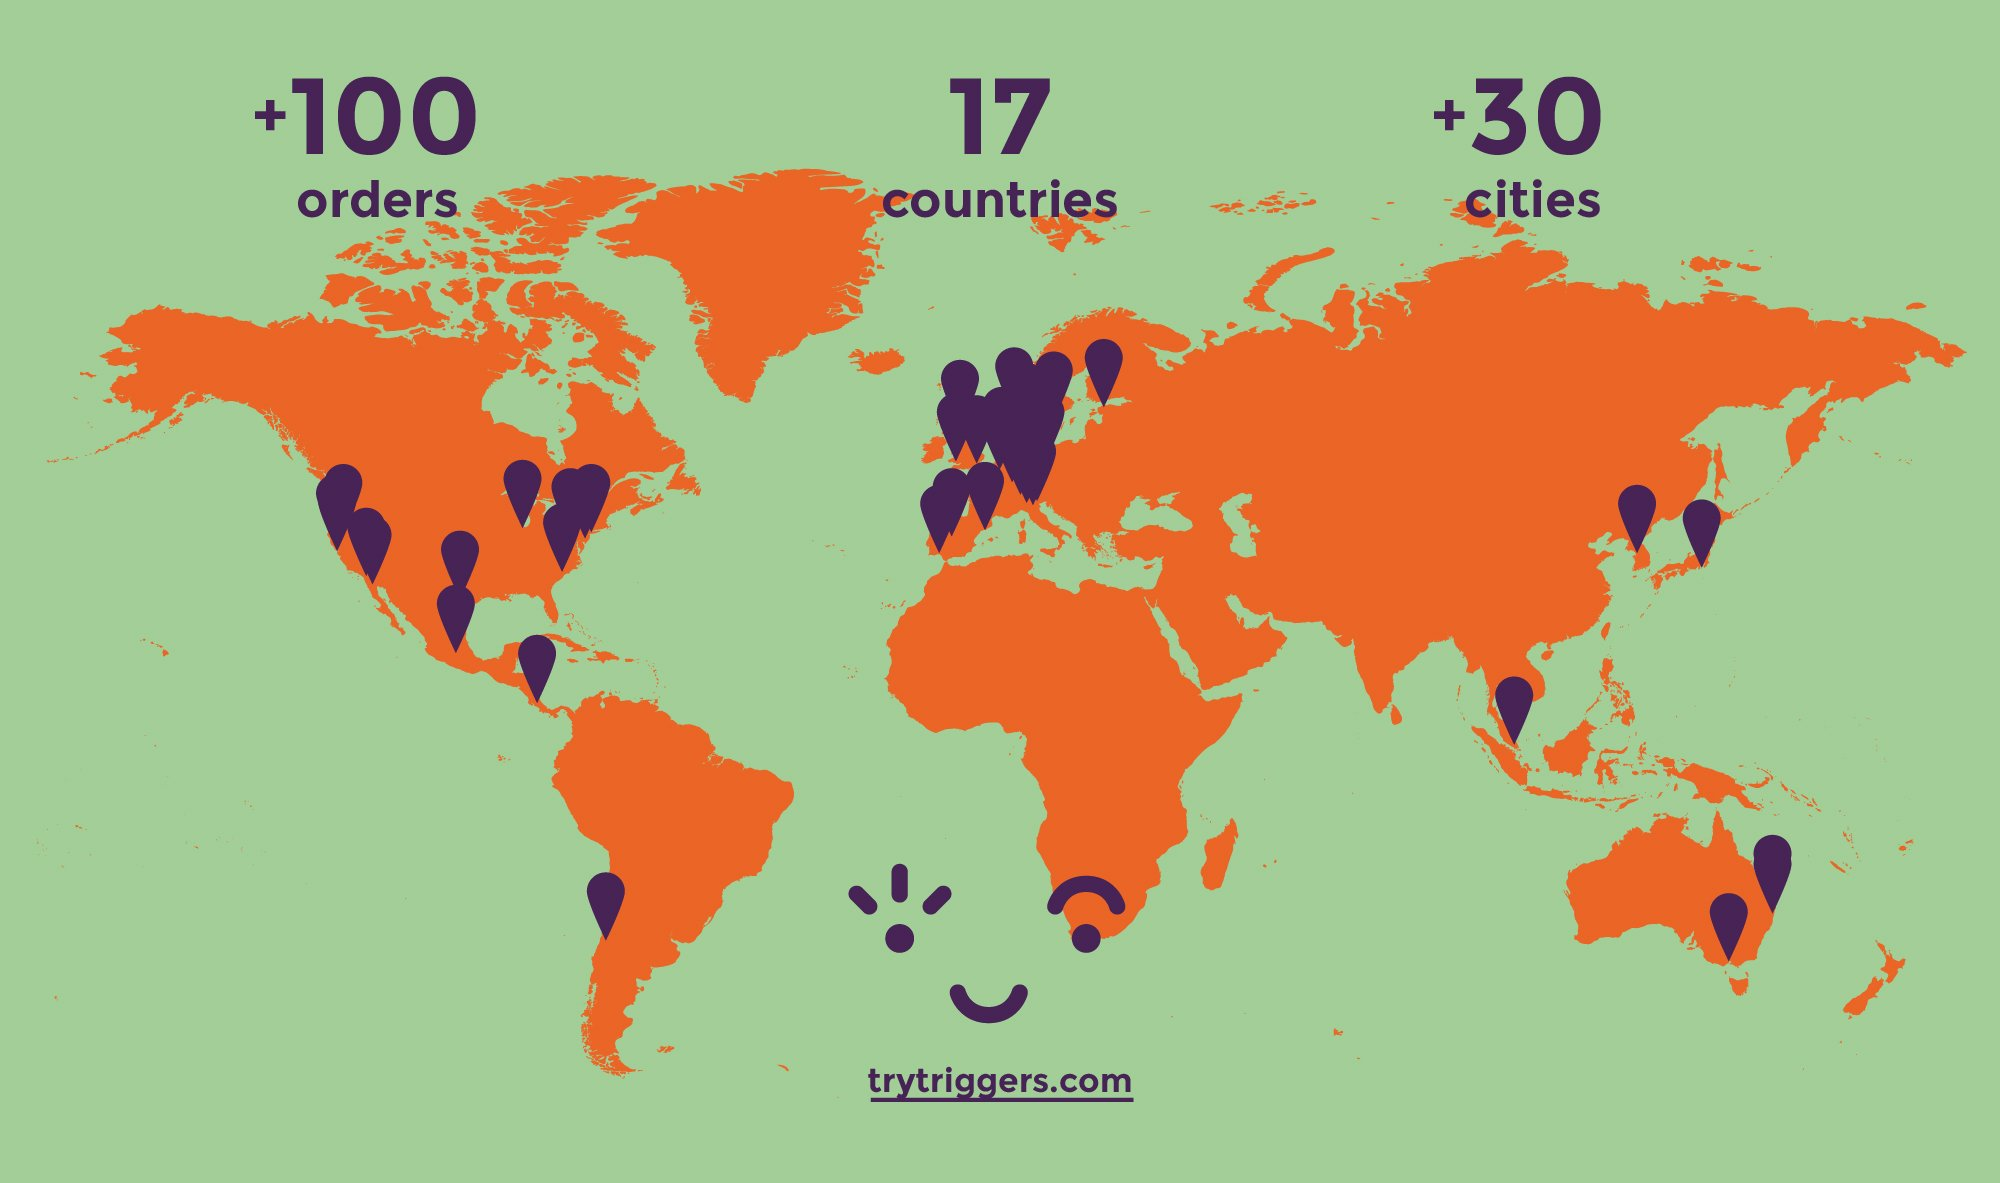 Spreading creative thinking around the world. All this happened in just two weeks 🐥 https://t.co/KdX0bfp2lG https://t.co/yzRr4M9yX6